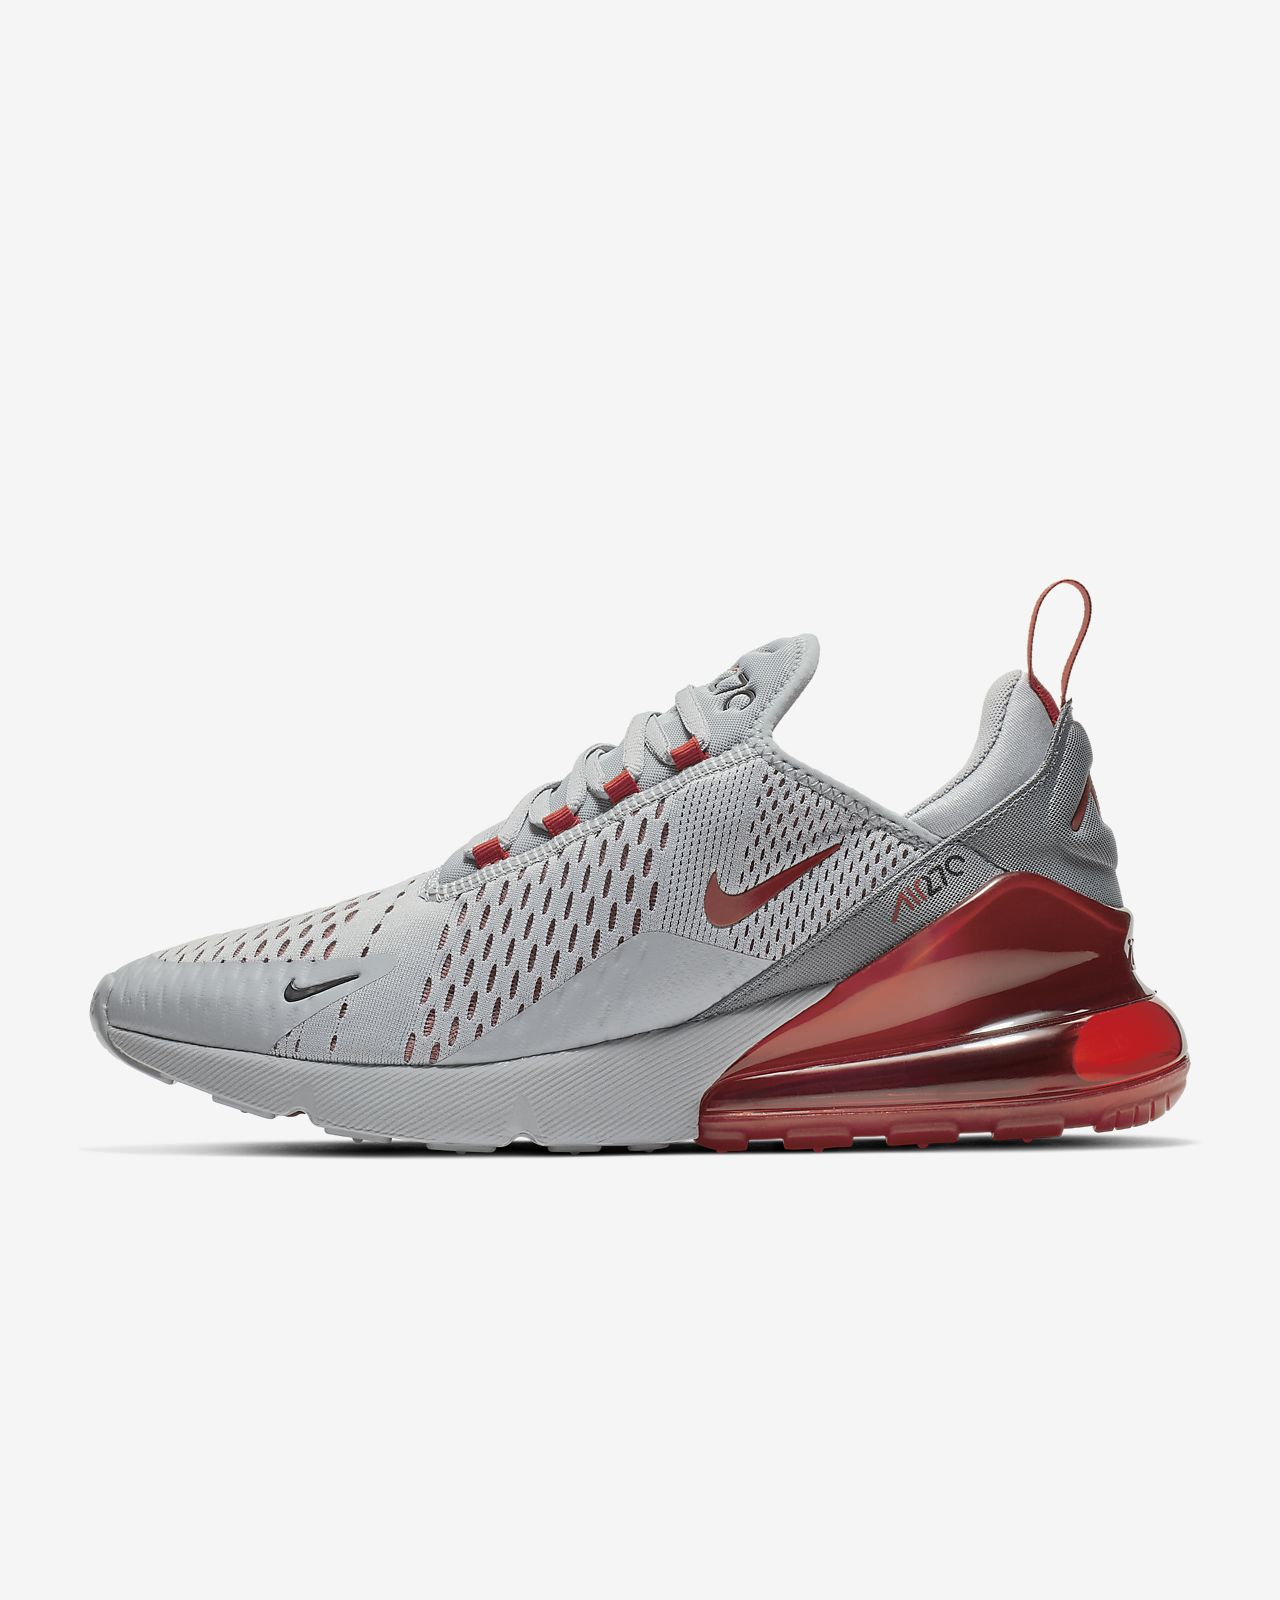 cheaper 508ea 2c1d8 Nike Air Max 270